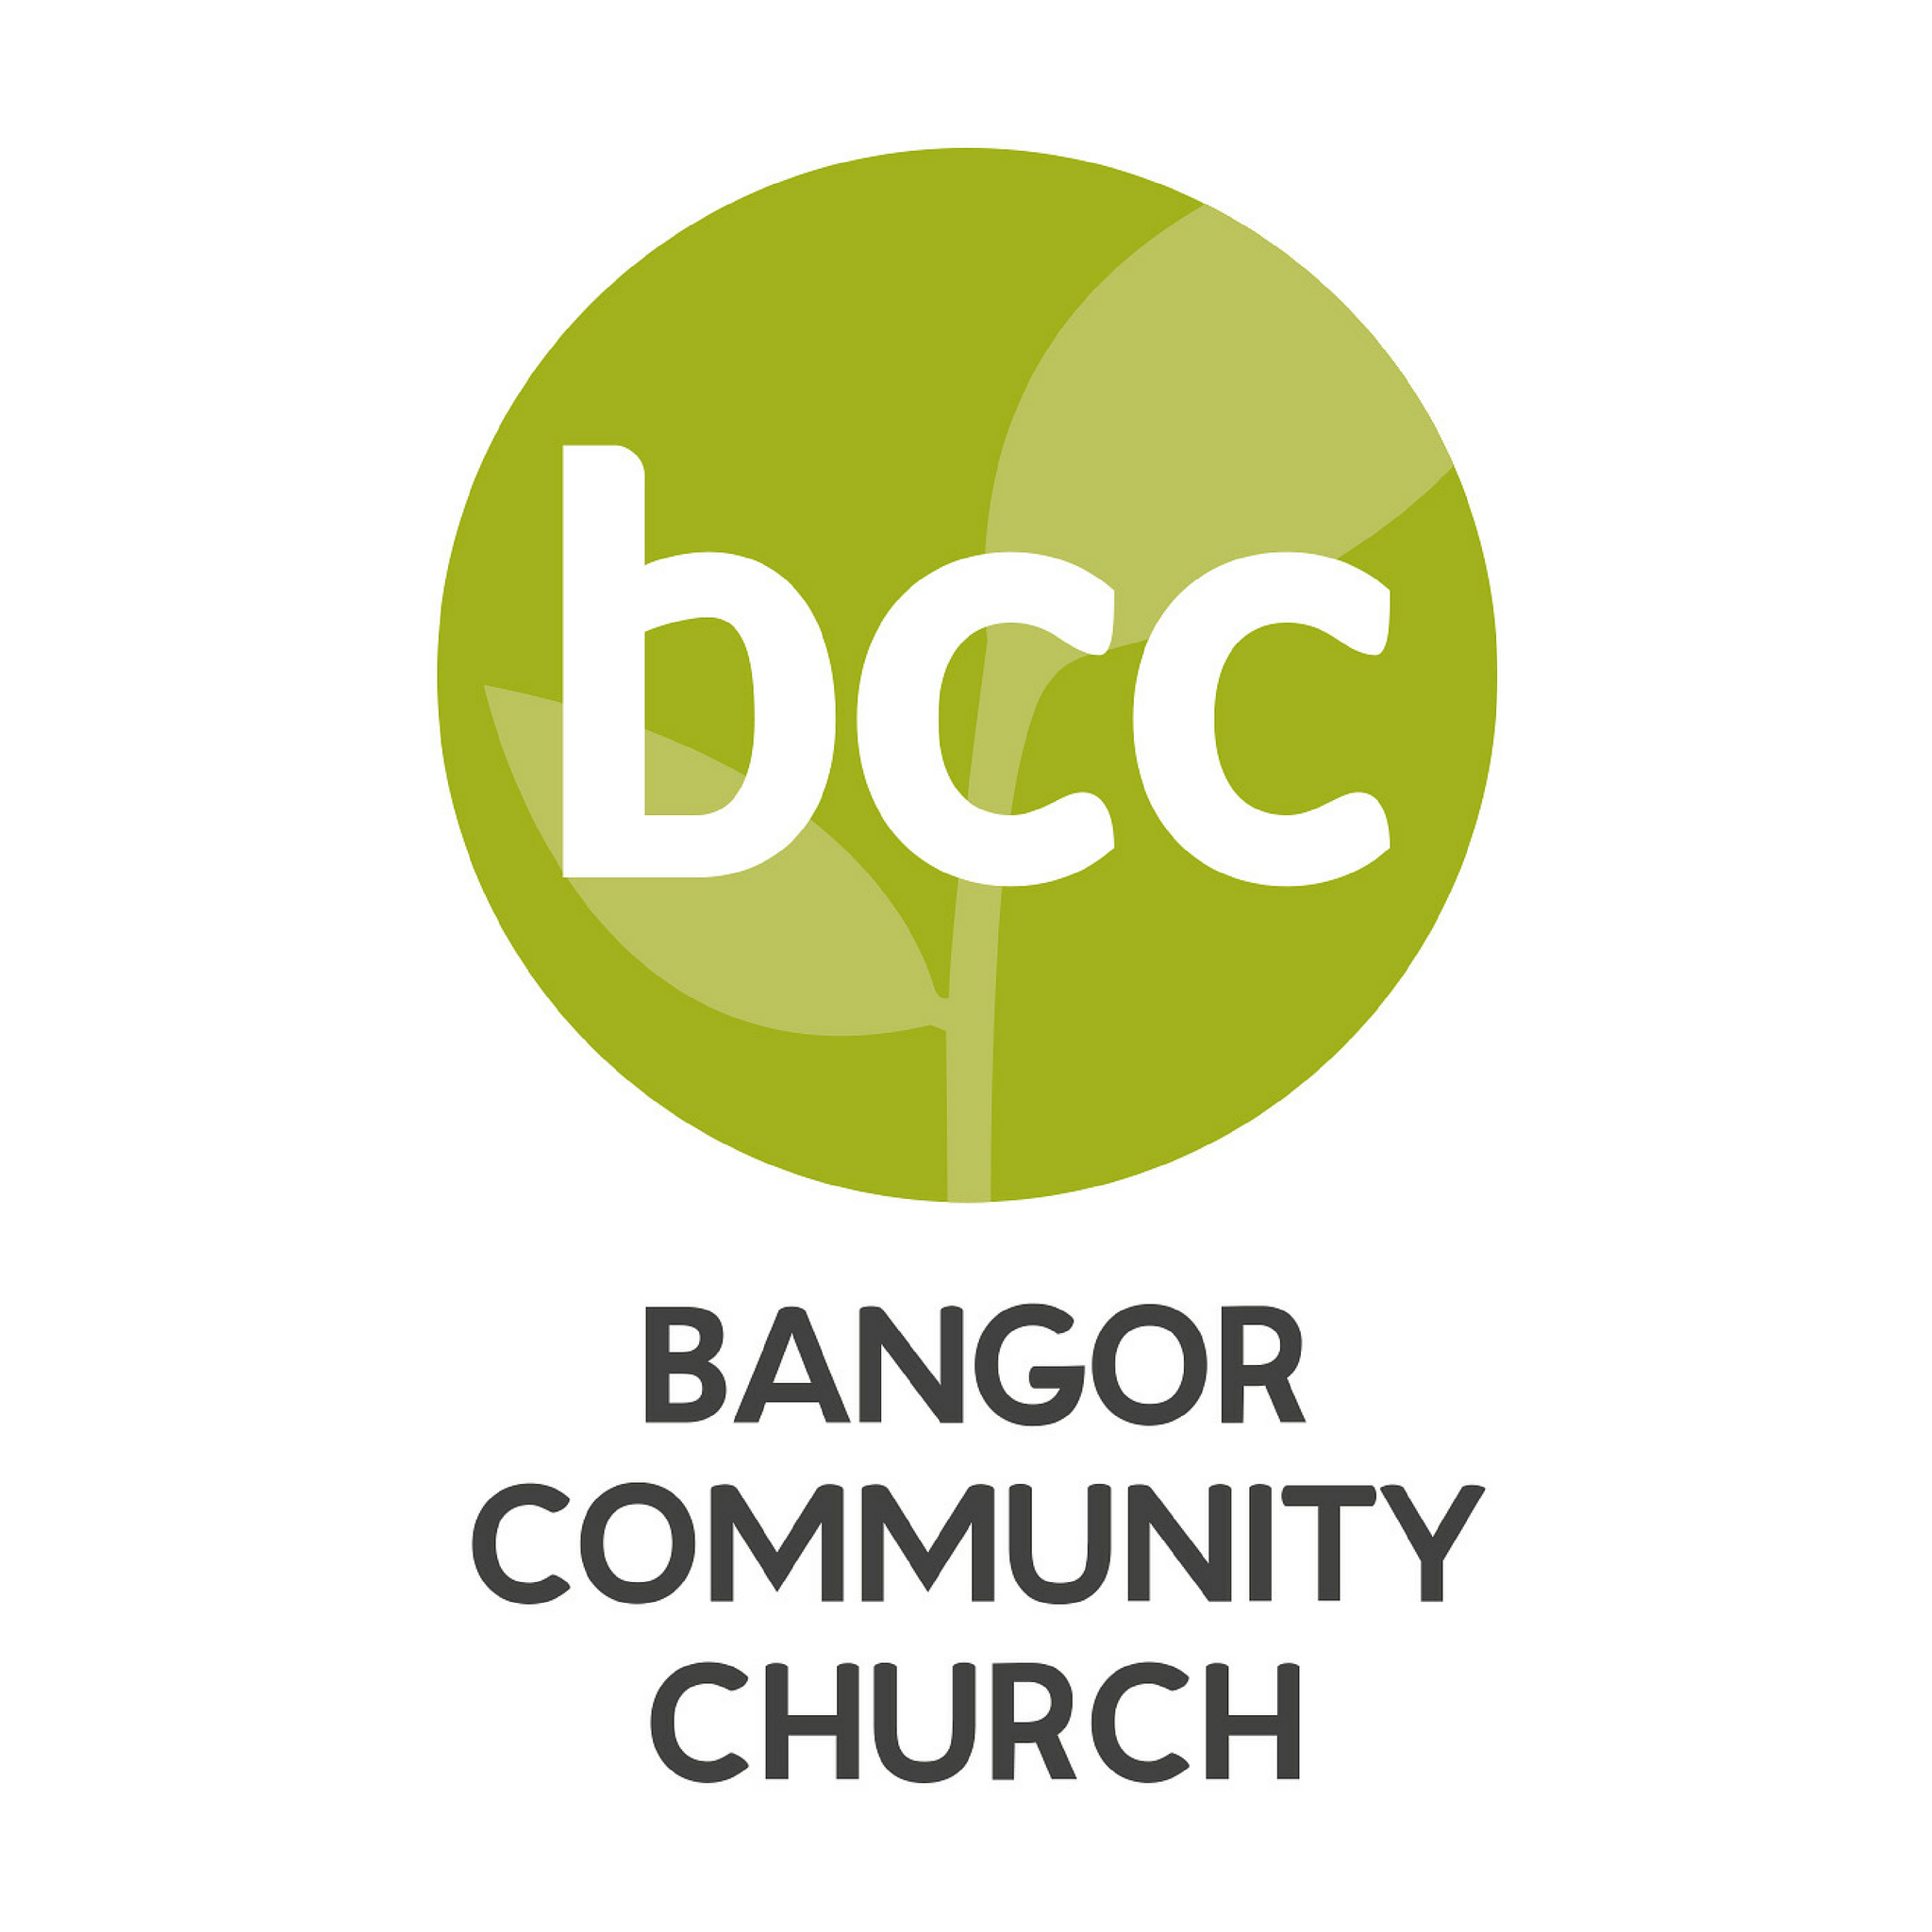 Bangor Community Church